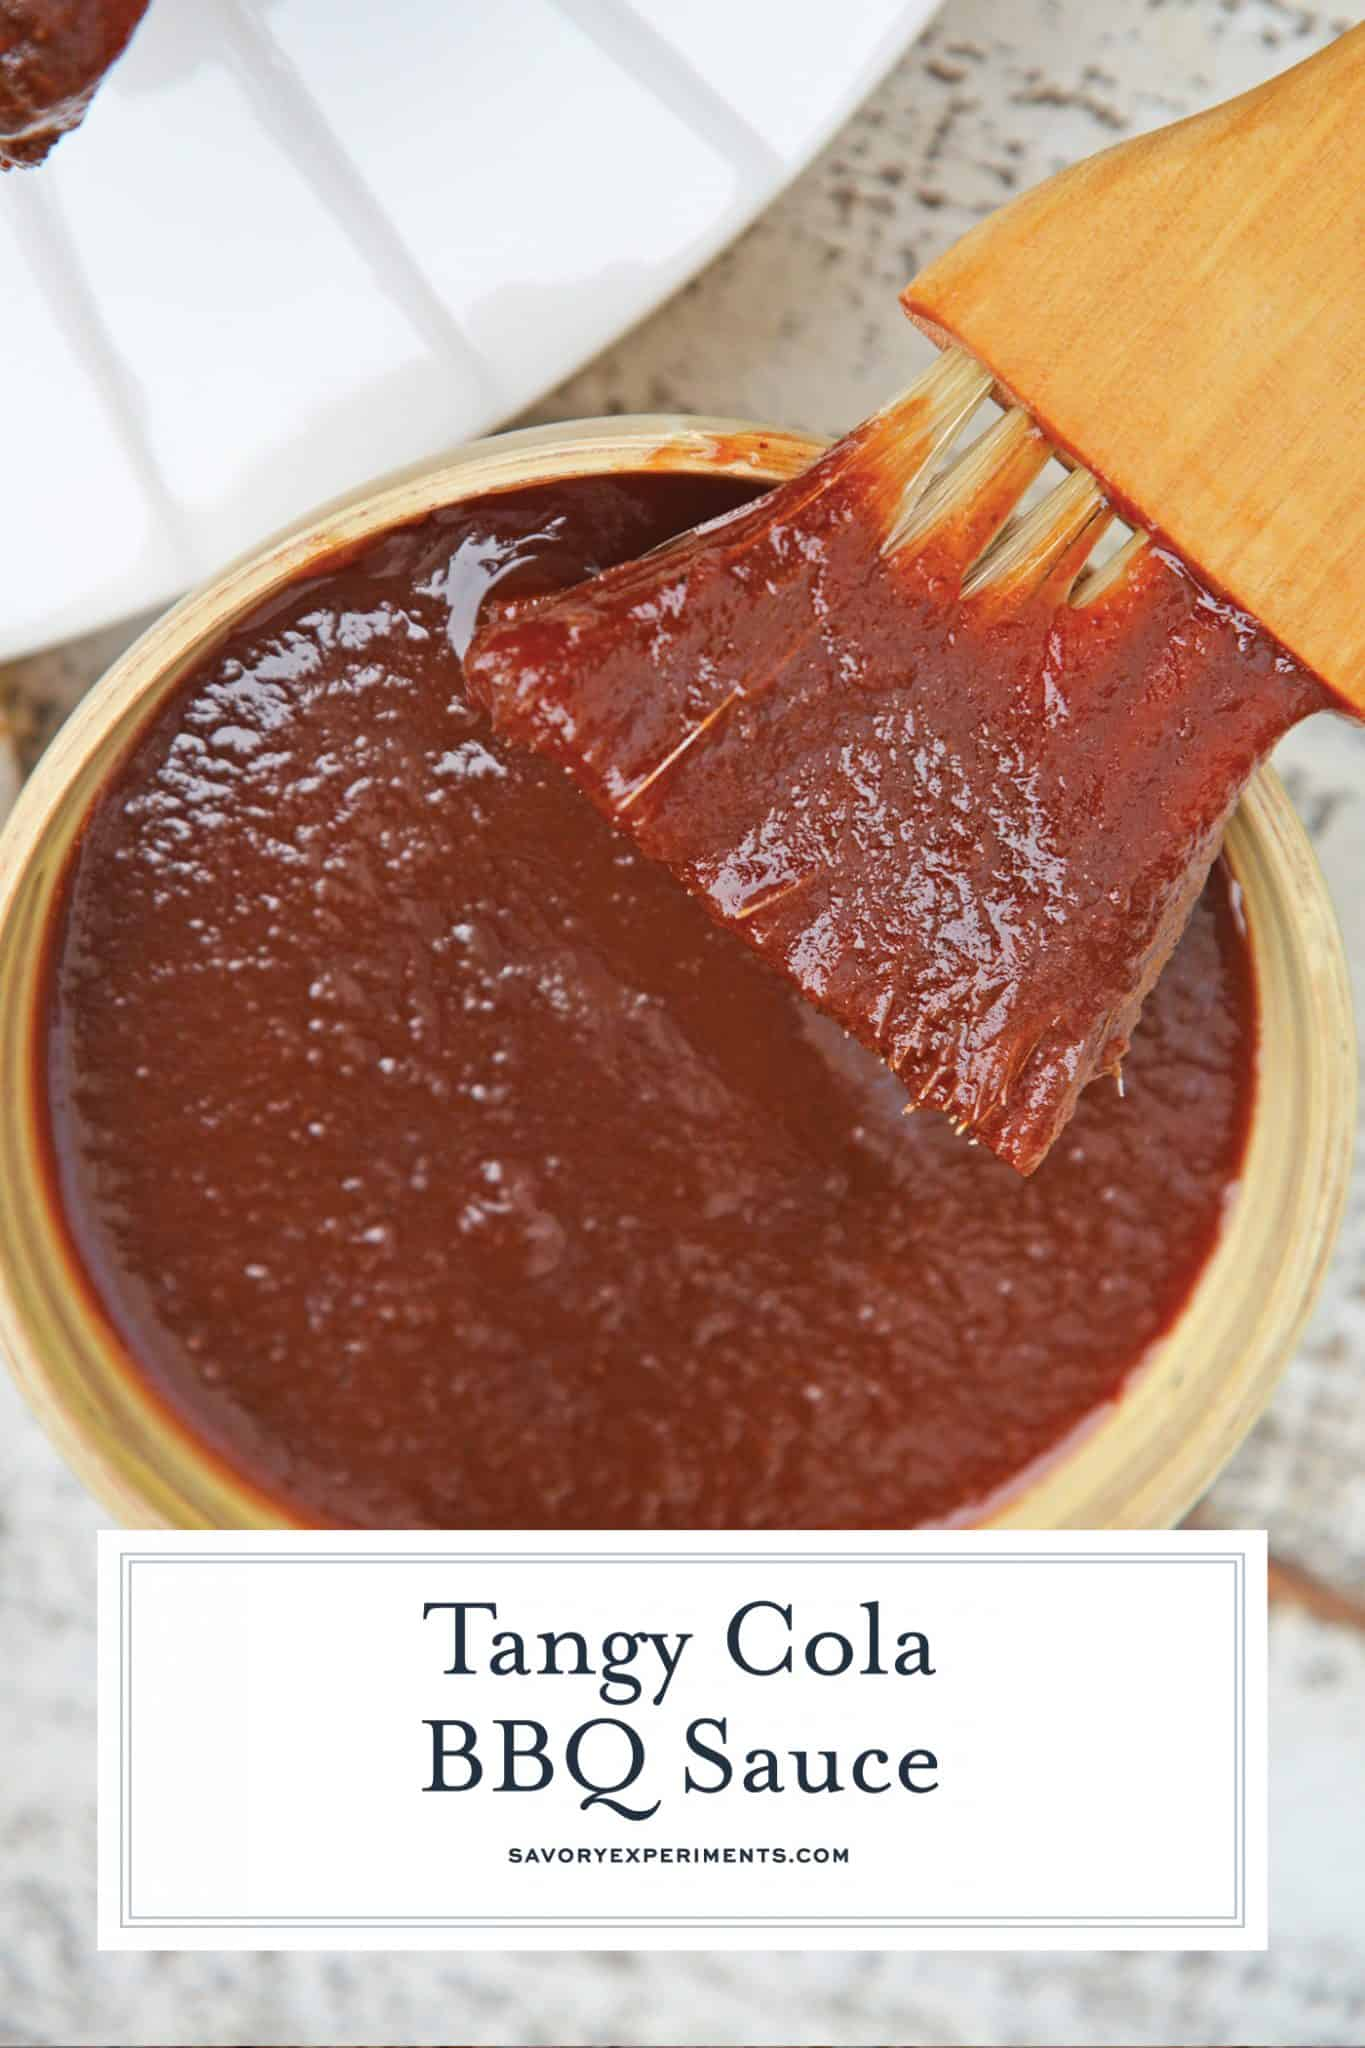 Zesty Cola BBQ Sauce is delicious on anything grilled including chicken, ribs, brisket and pulled pork. It only takes 10 minutes to make! #colabbqsauce #homemadebbqsauce www.savoryexperiments.com